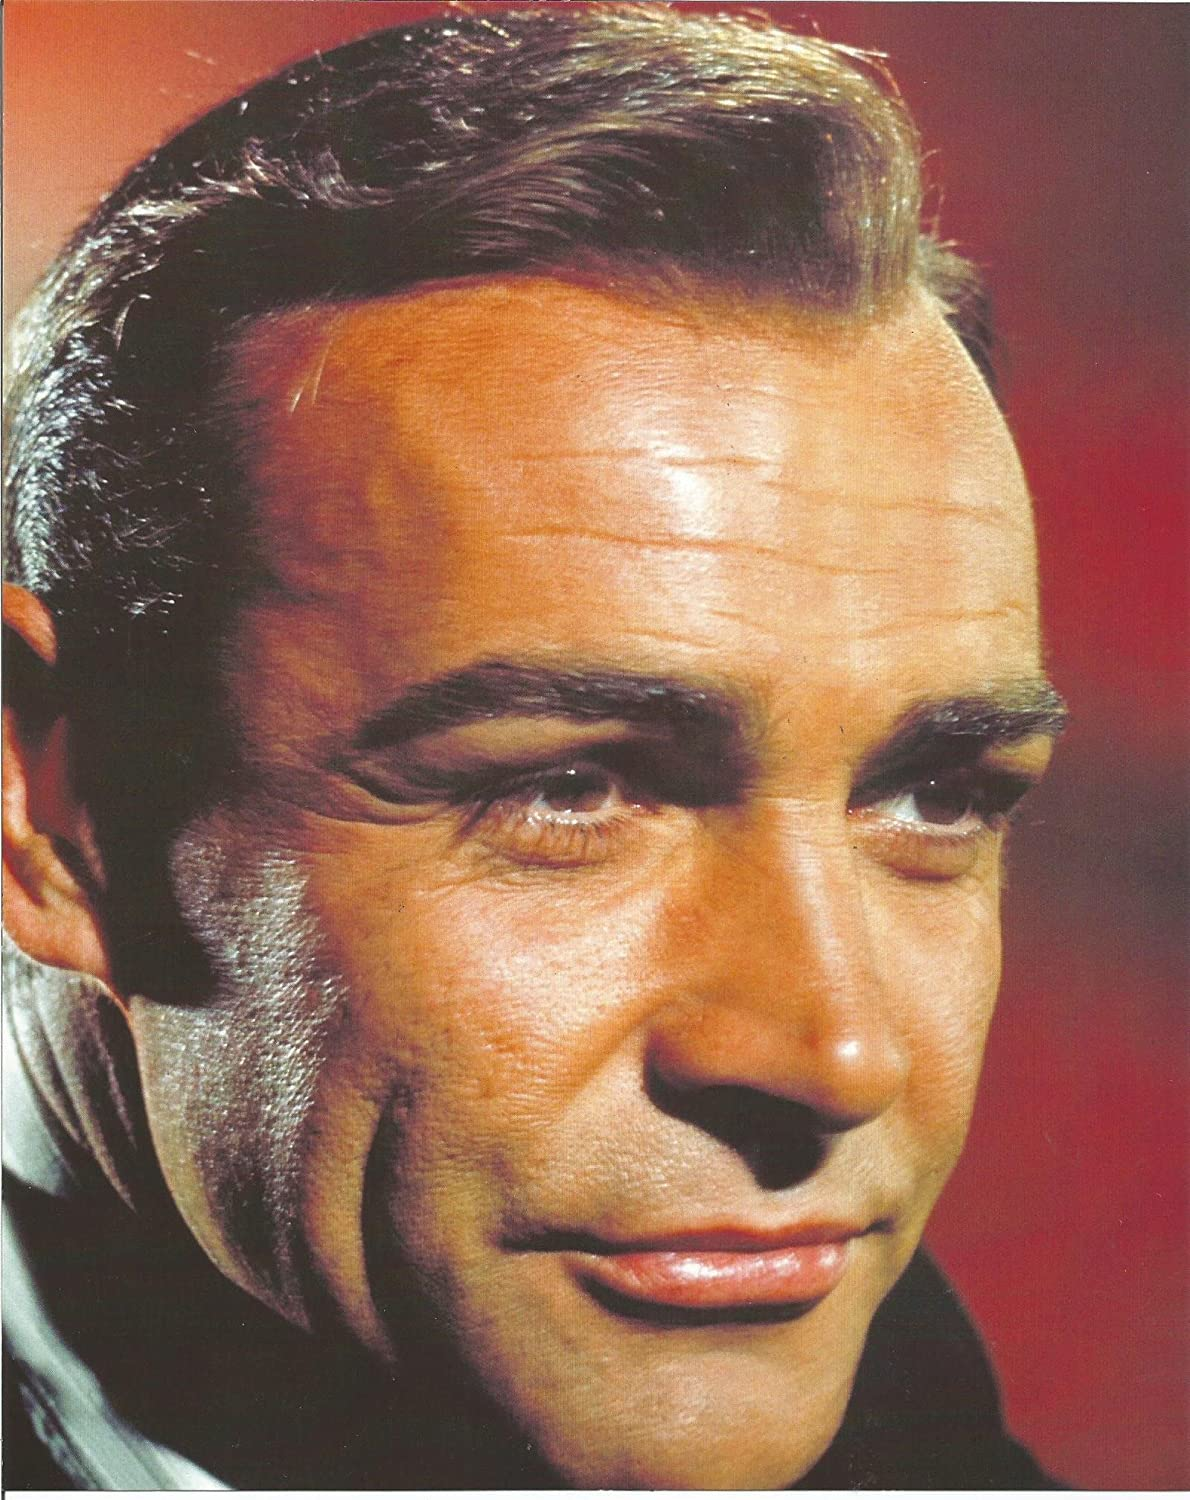 James Bond 007 Sean Connery Tight Shot Of Face 8 X 10 Promo Photo 004 At Amazon S Entertainment Collectibles Store